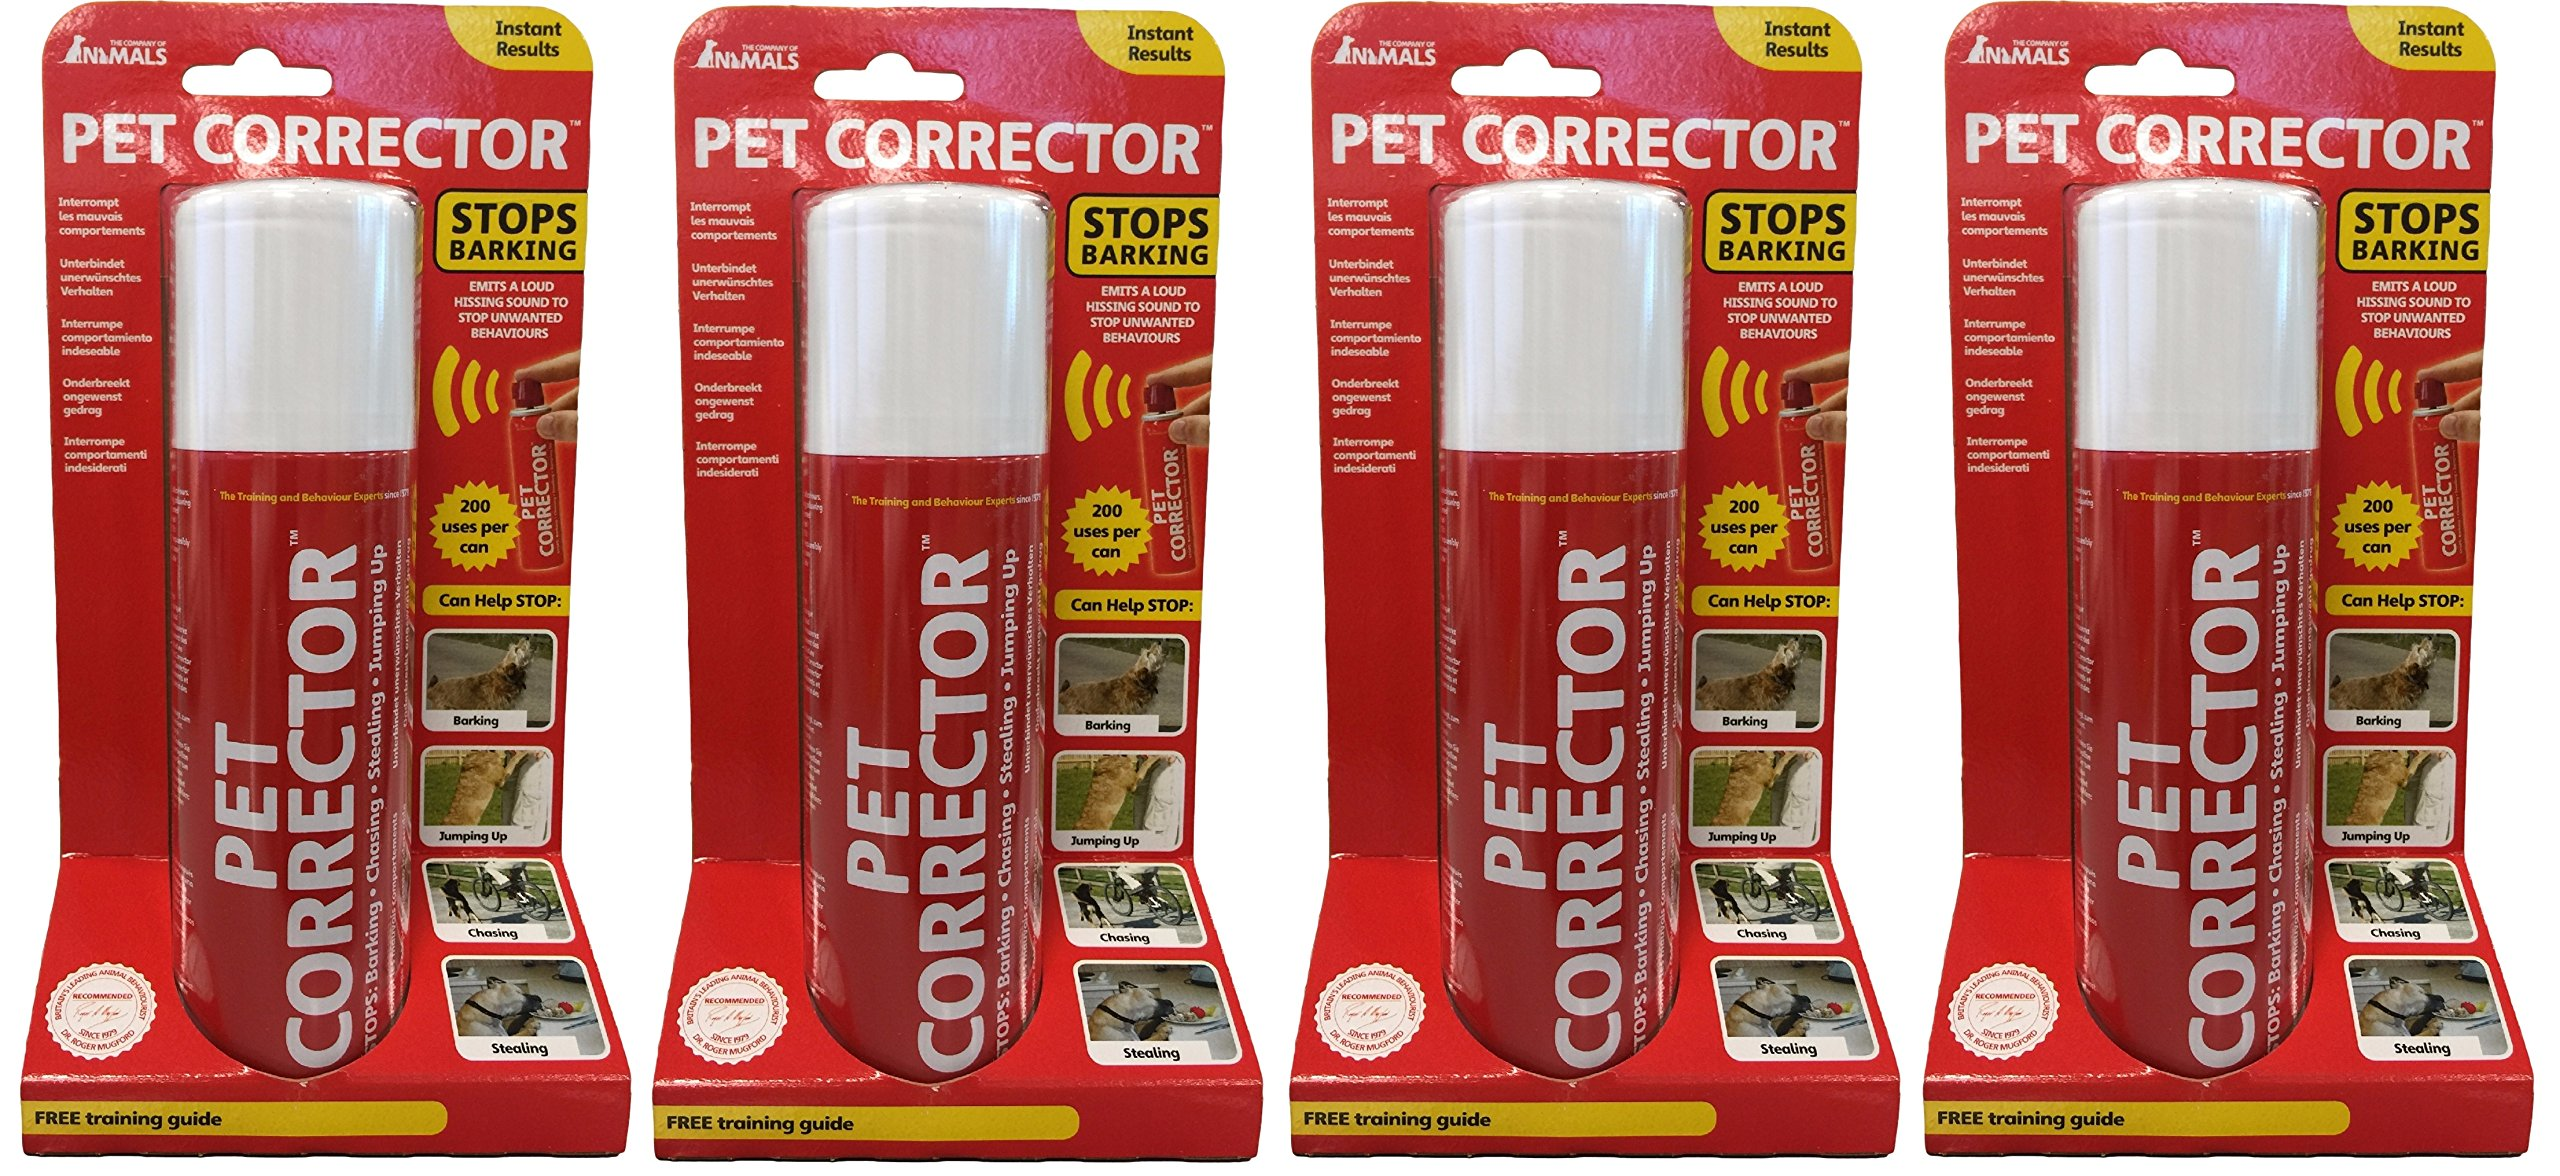 Pet Corrector - The Company of Animals - Bad Behavior and Training Aid - Quickly Stops Barking, Jumping, Digging, Chewing - Harmless and Safe- 200ml, Pack of 4 by The Company of Animals